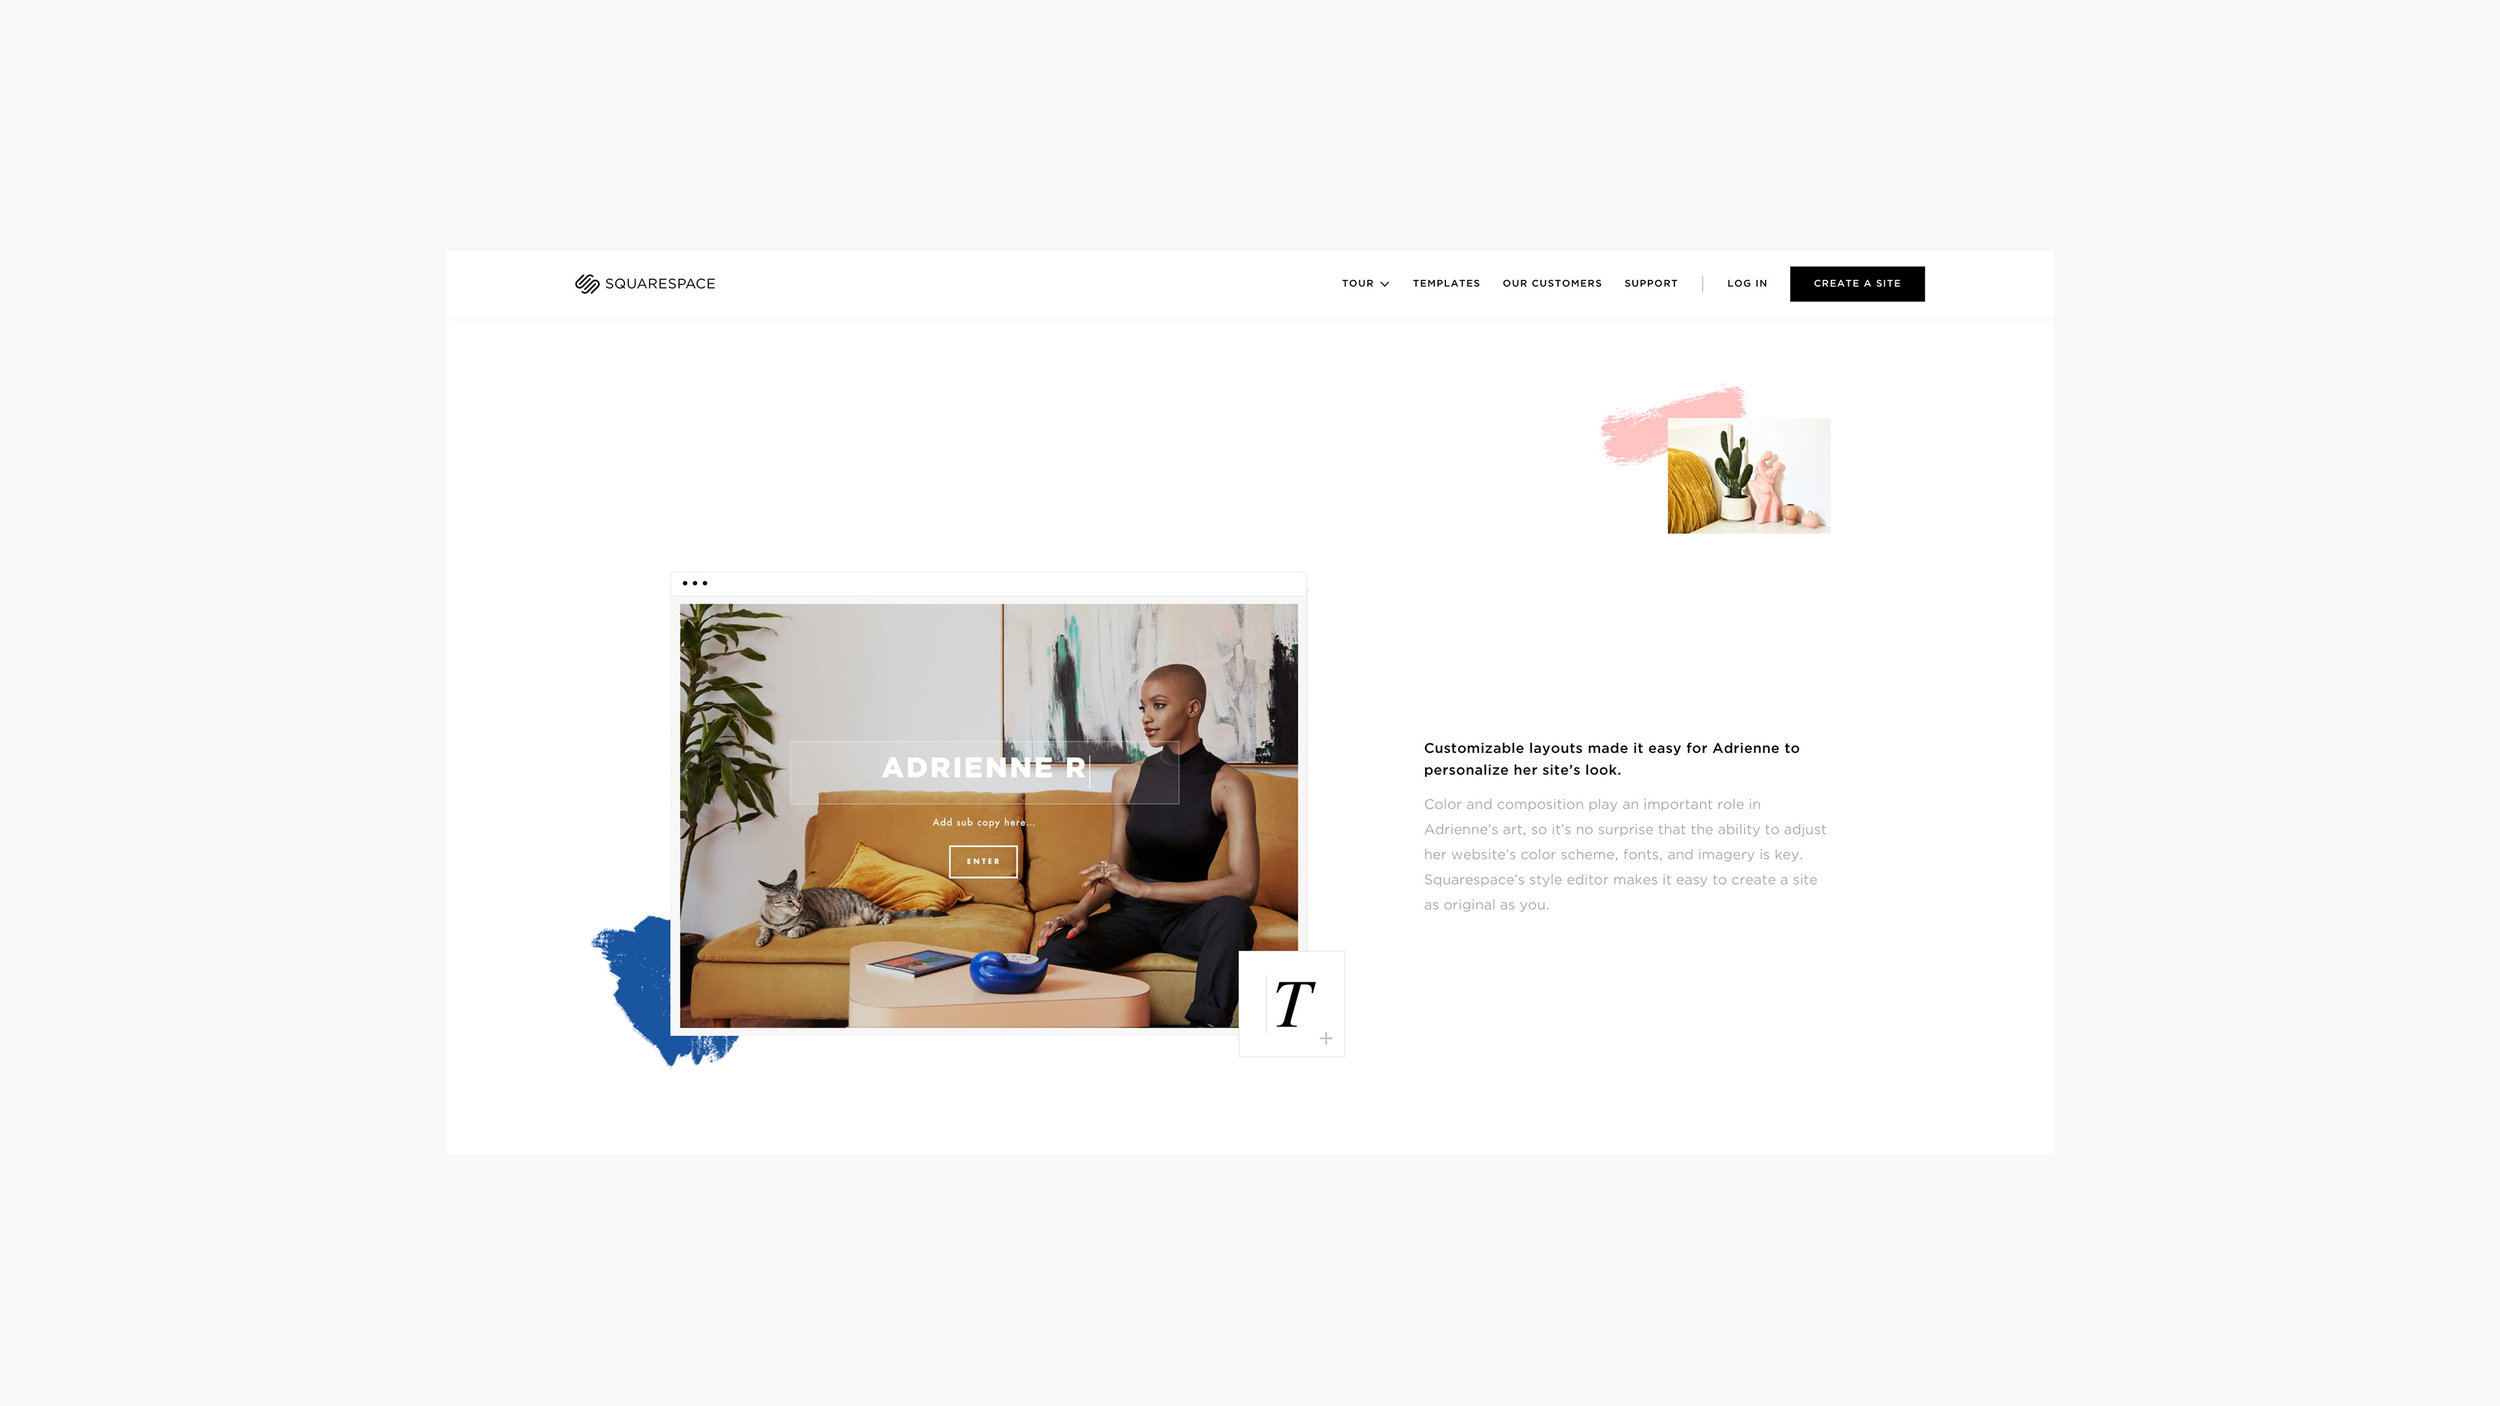 squarespace-youtube-frontsite-adrienne-2.jpg